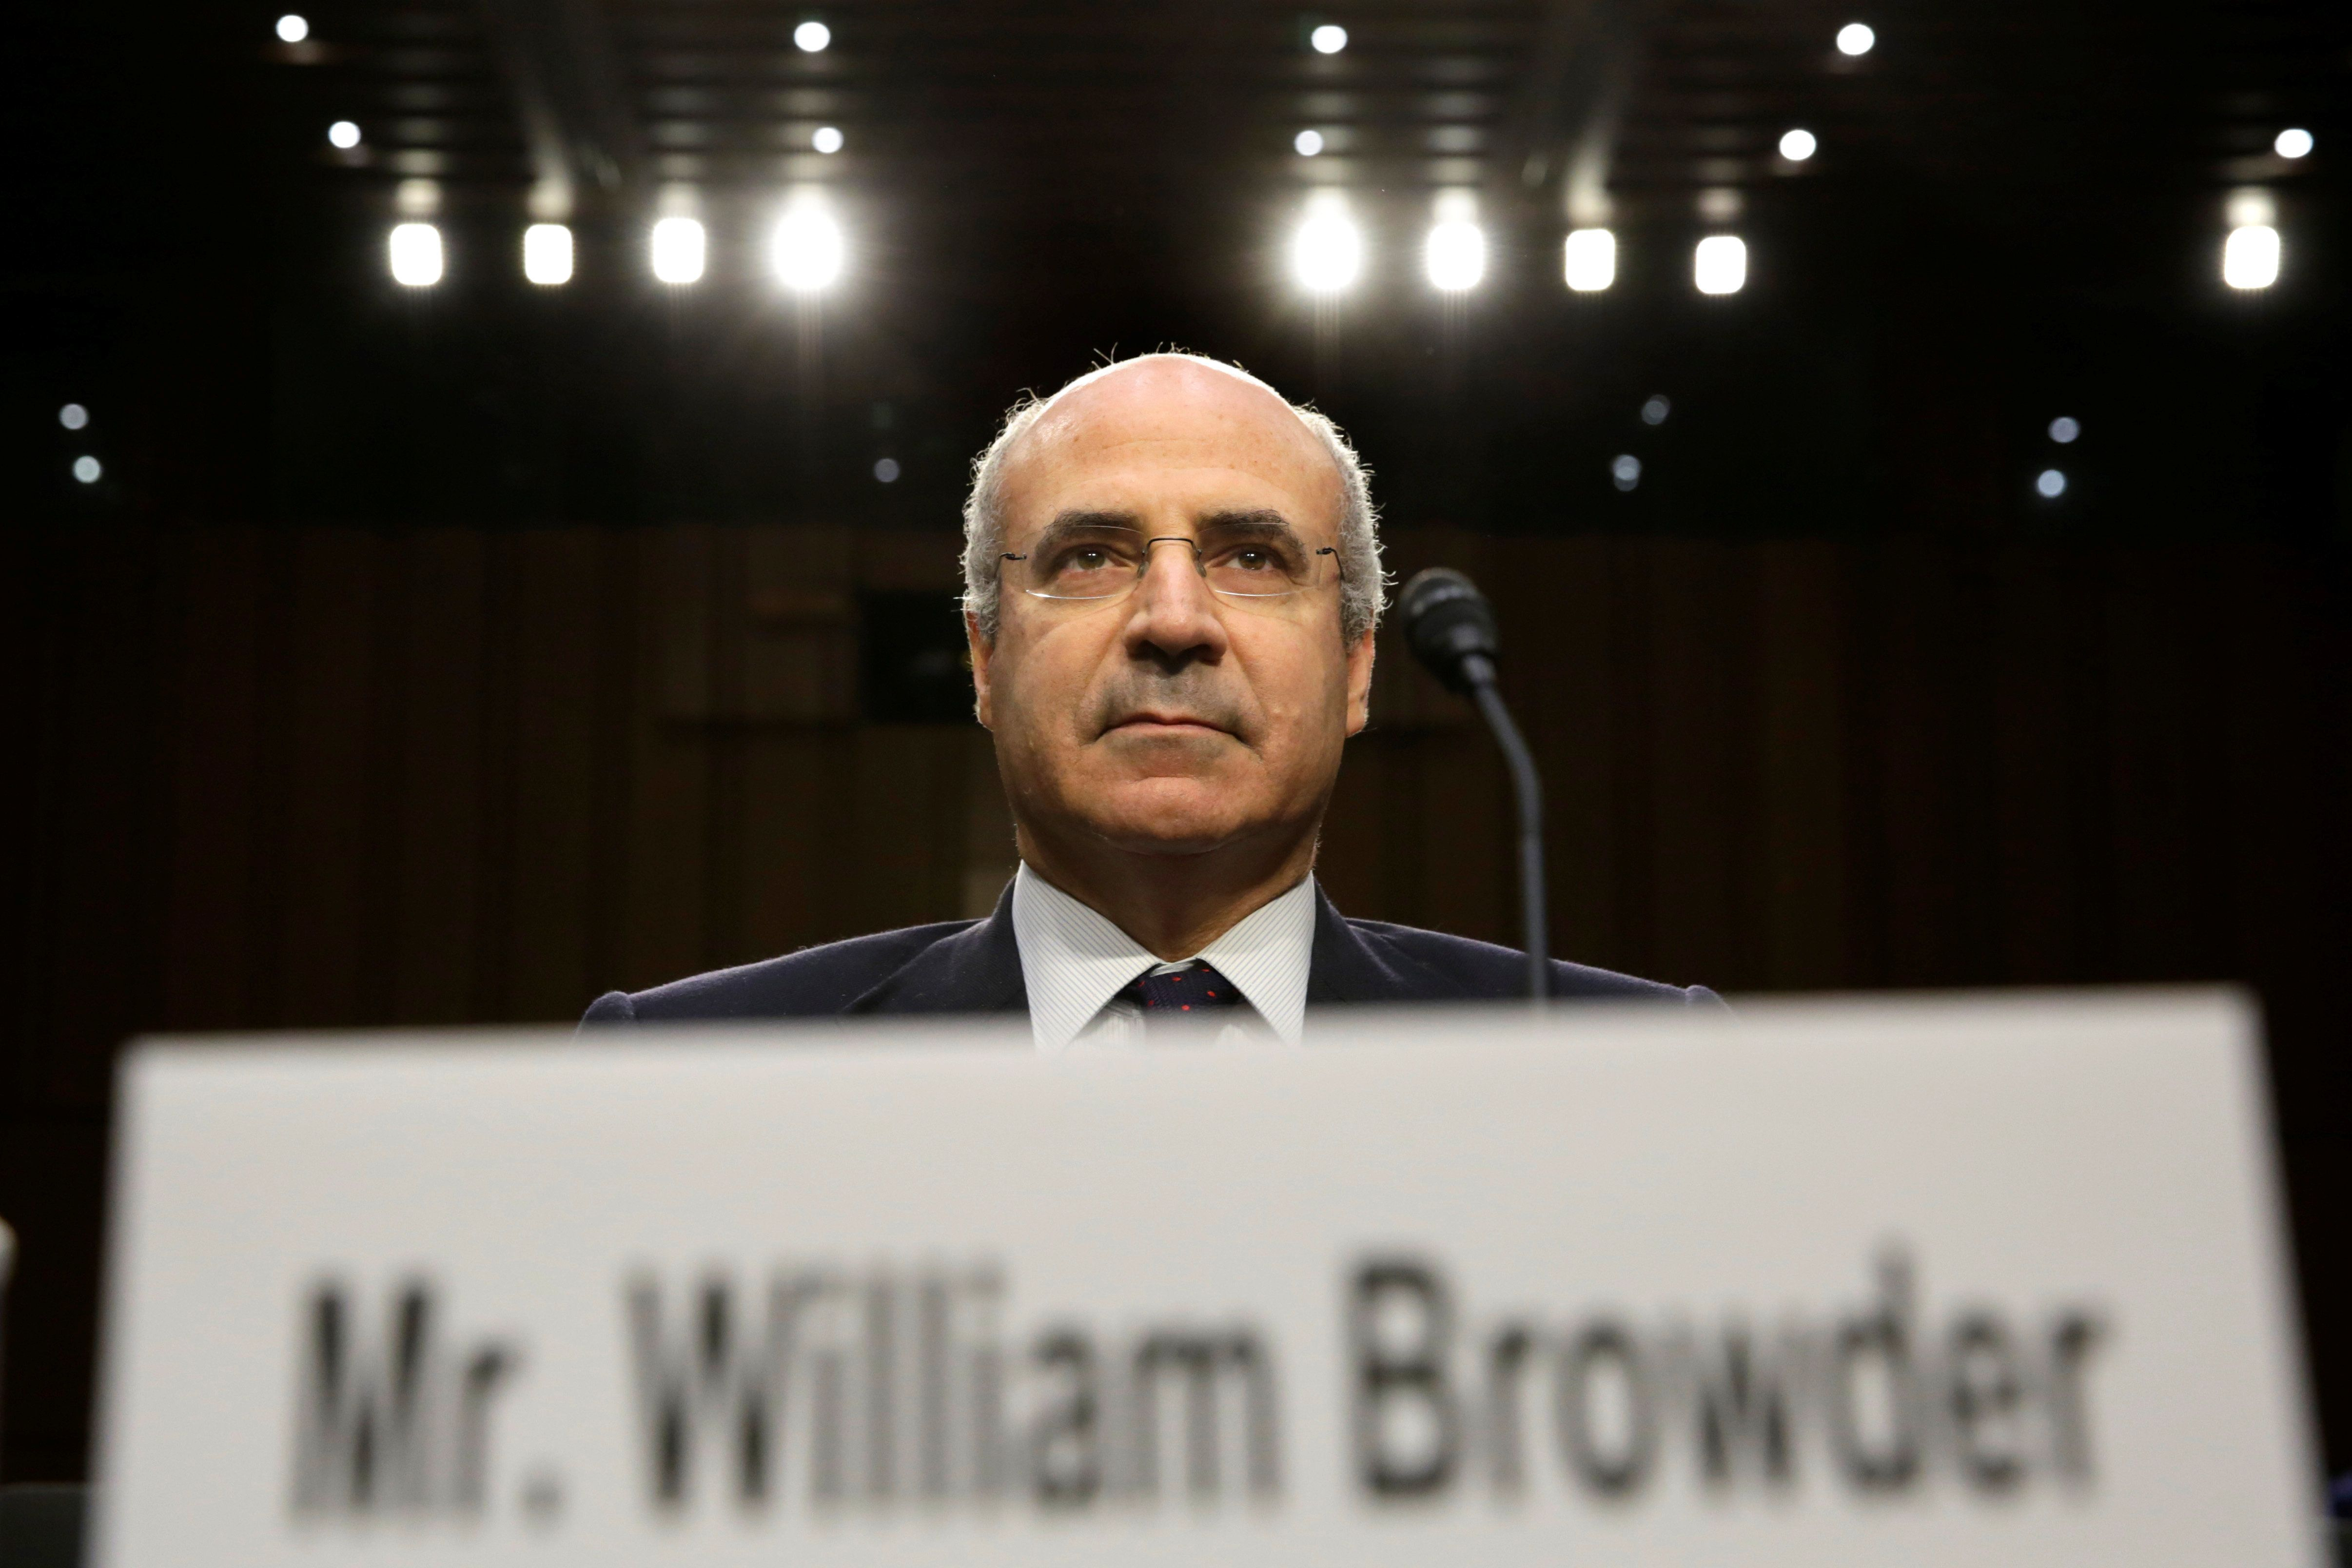 Hermitage Capital CEO William Browder waits to testify before a continuation of Senate Judiciary Committee hearing on alleged Russian meddling in the 2016 presidential election on Capitol Hill in Washington, U.S., July 27, 2017. REUTERS/Yuri Gripas